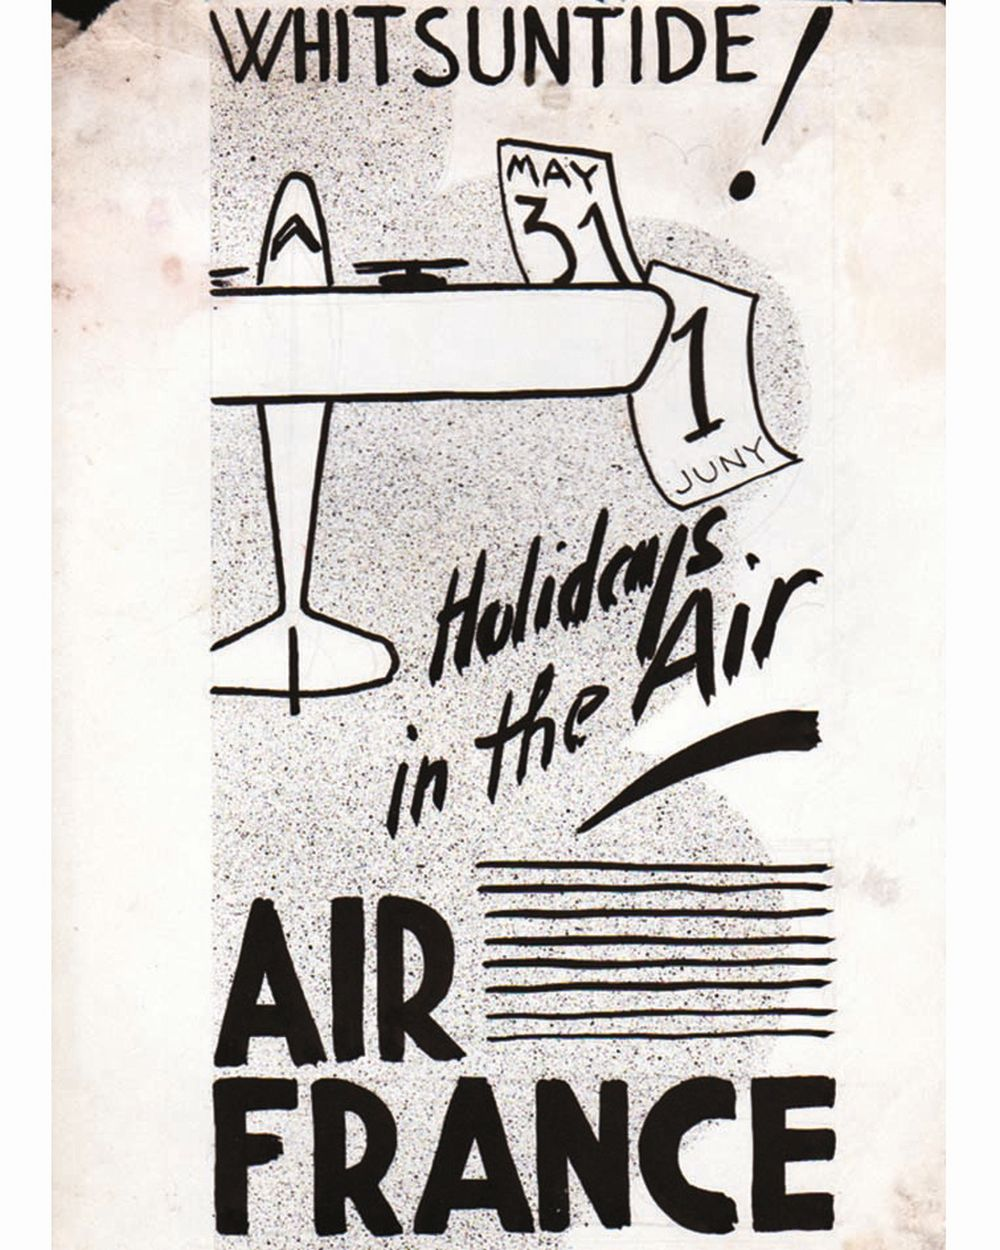 DOOB - Holidays in the Air ..Air France  dessin à l'encre de chine drawing in china ink unic piece     1938